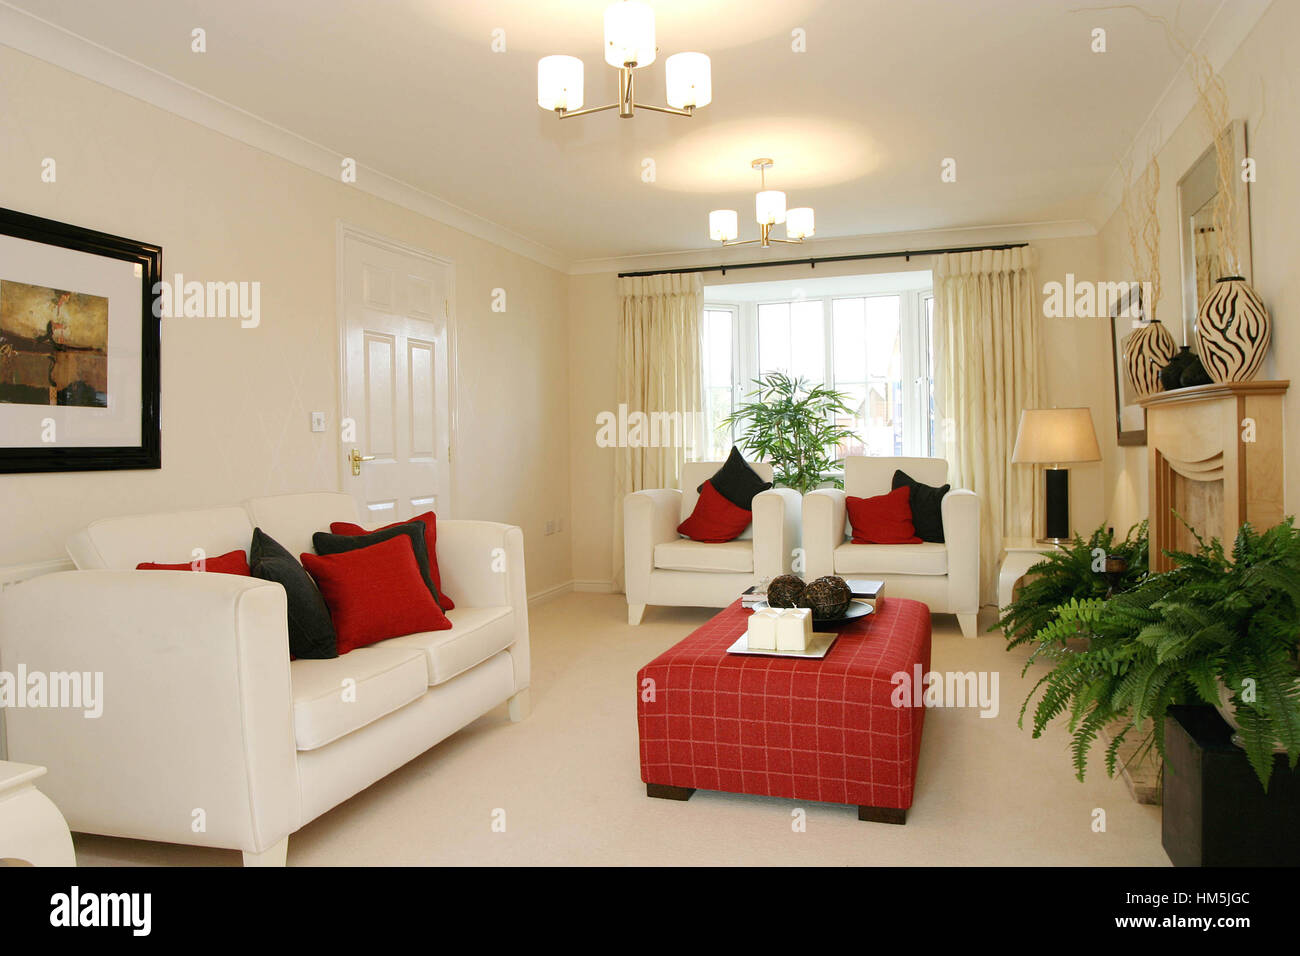 Modern living room interior cream sofas red soft furnished modern living room interior cream sofas red soft furnished coffee table neautral colouring parisarafo Images